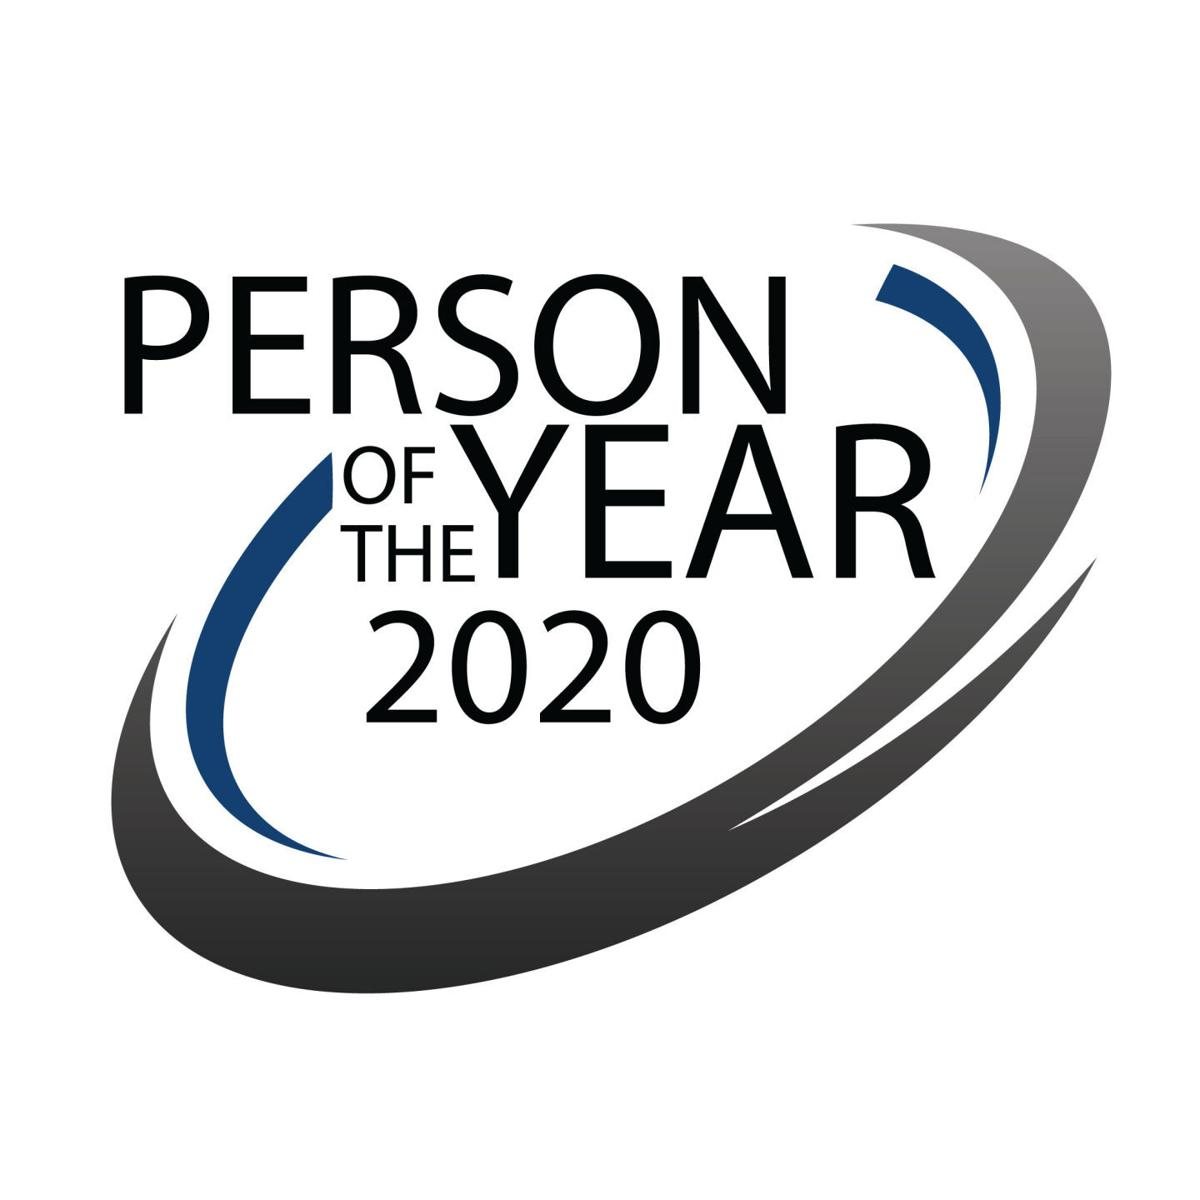 Person of Year